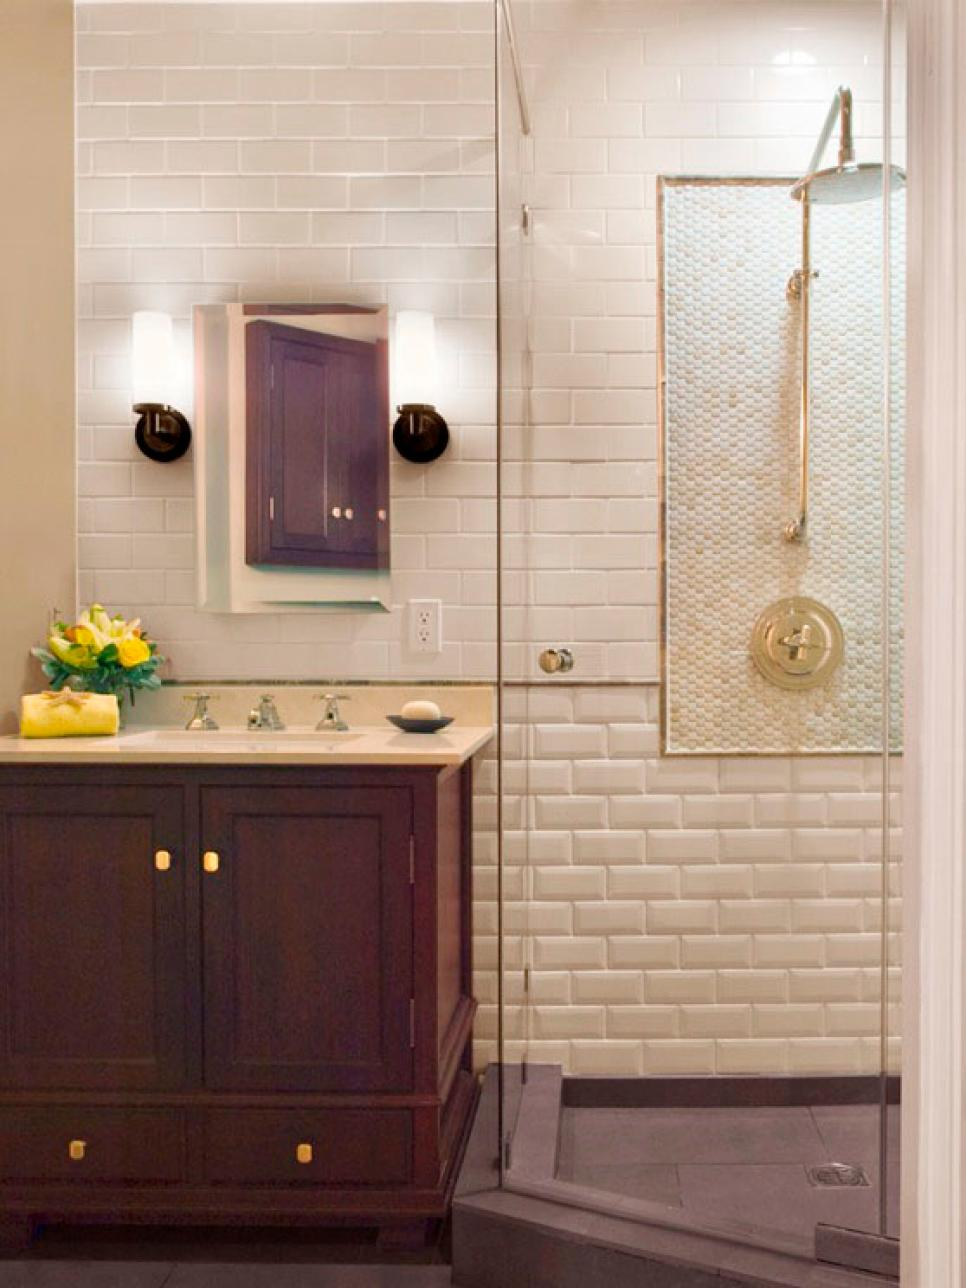 bathroom shower designs hgtv - Design For Small Bathroom With Shower